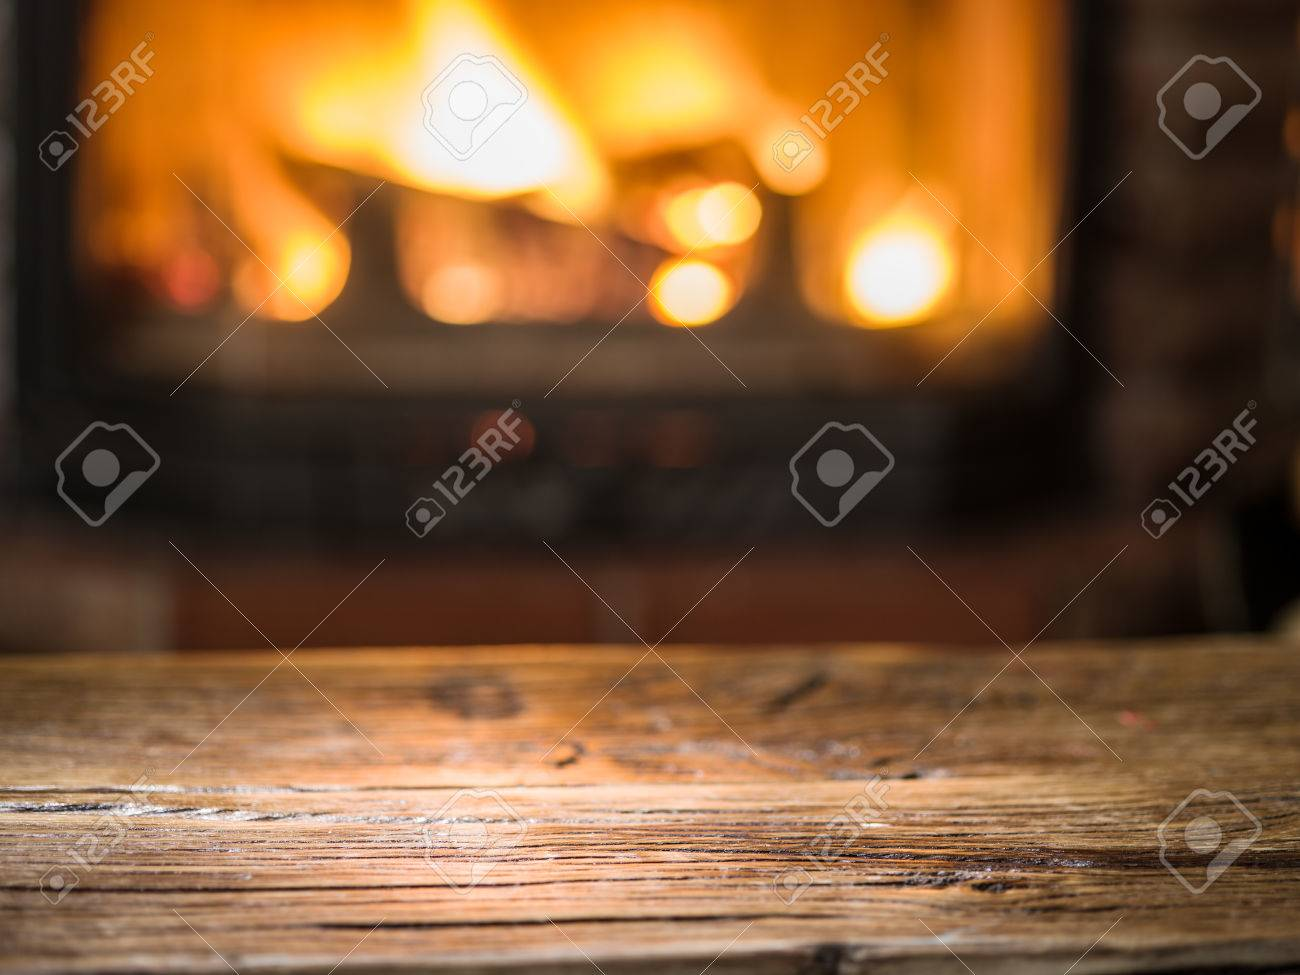 Old wooden table and fireplace with warm fire on the background. - 60157462